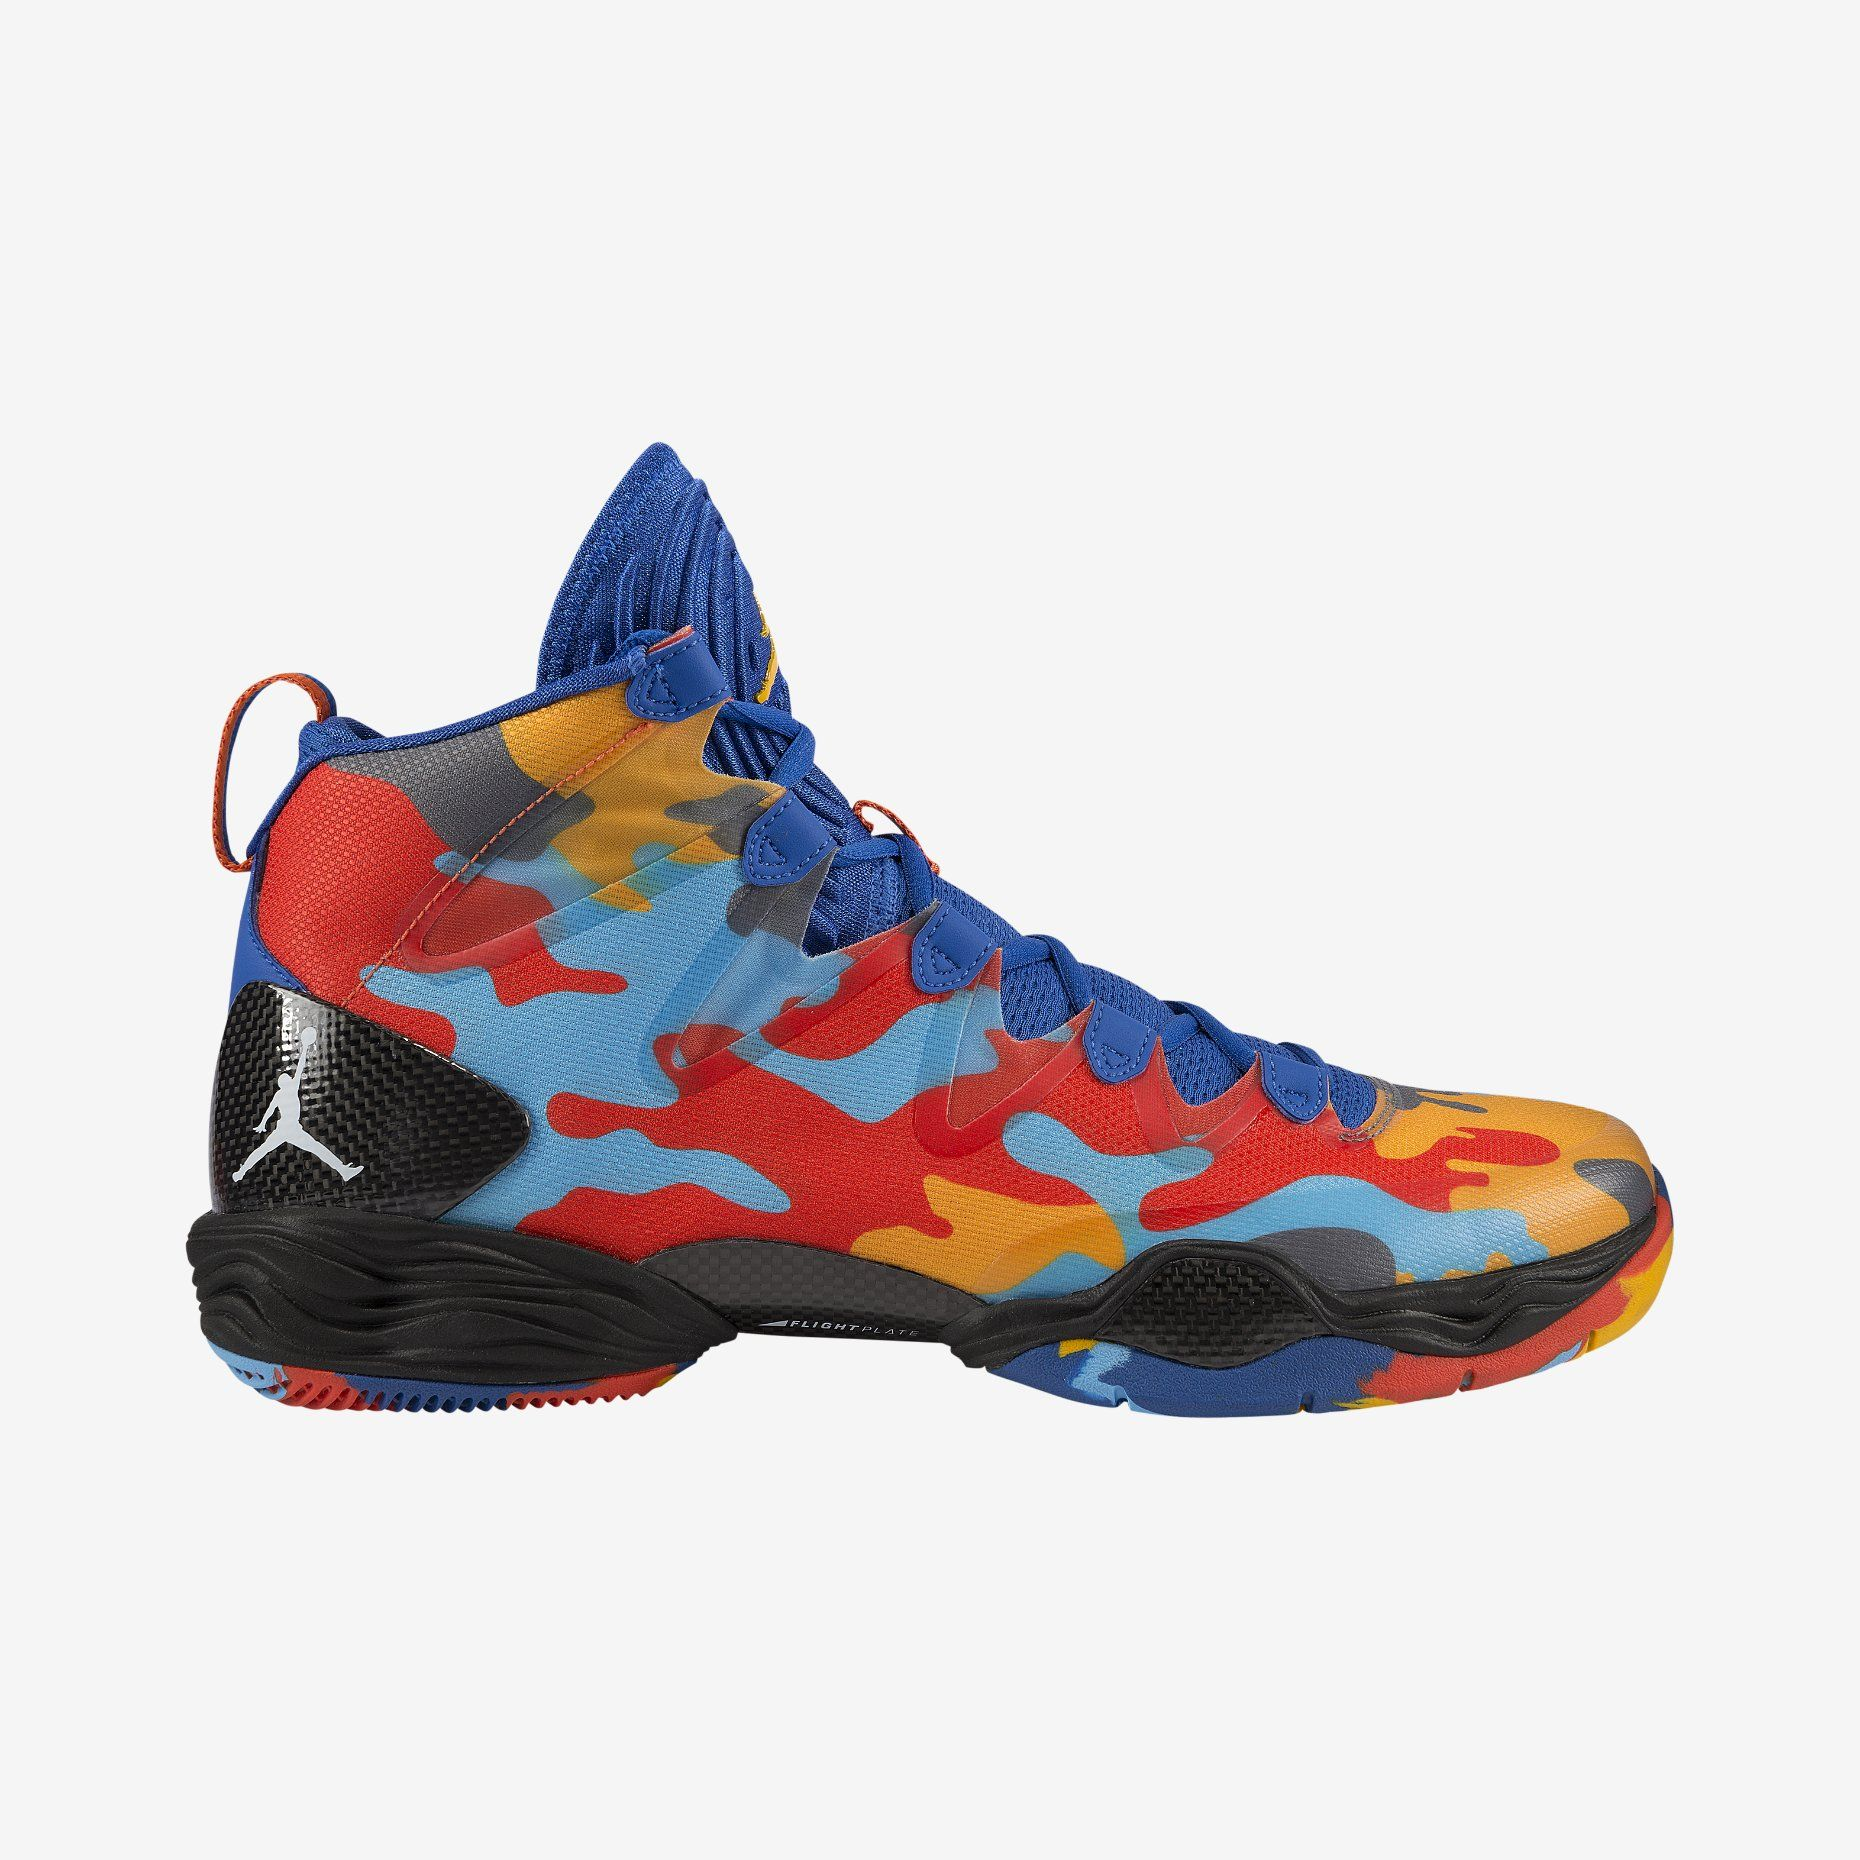 a23f130eabff Air Jordan XX8 SE Basketball Shoe